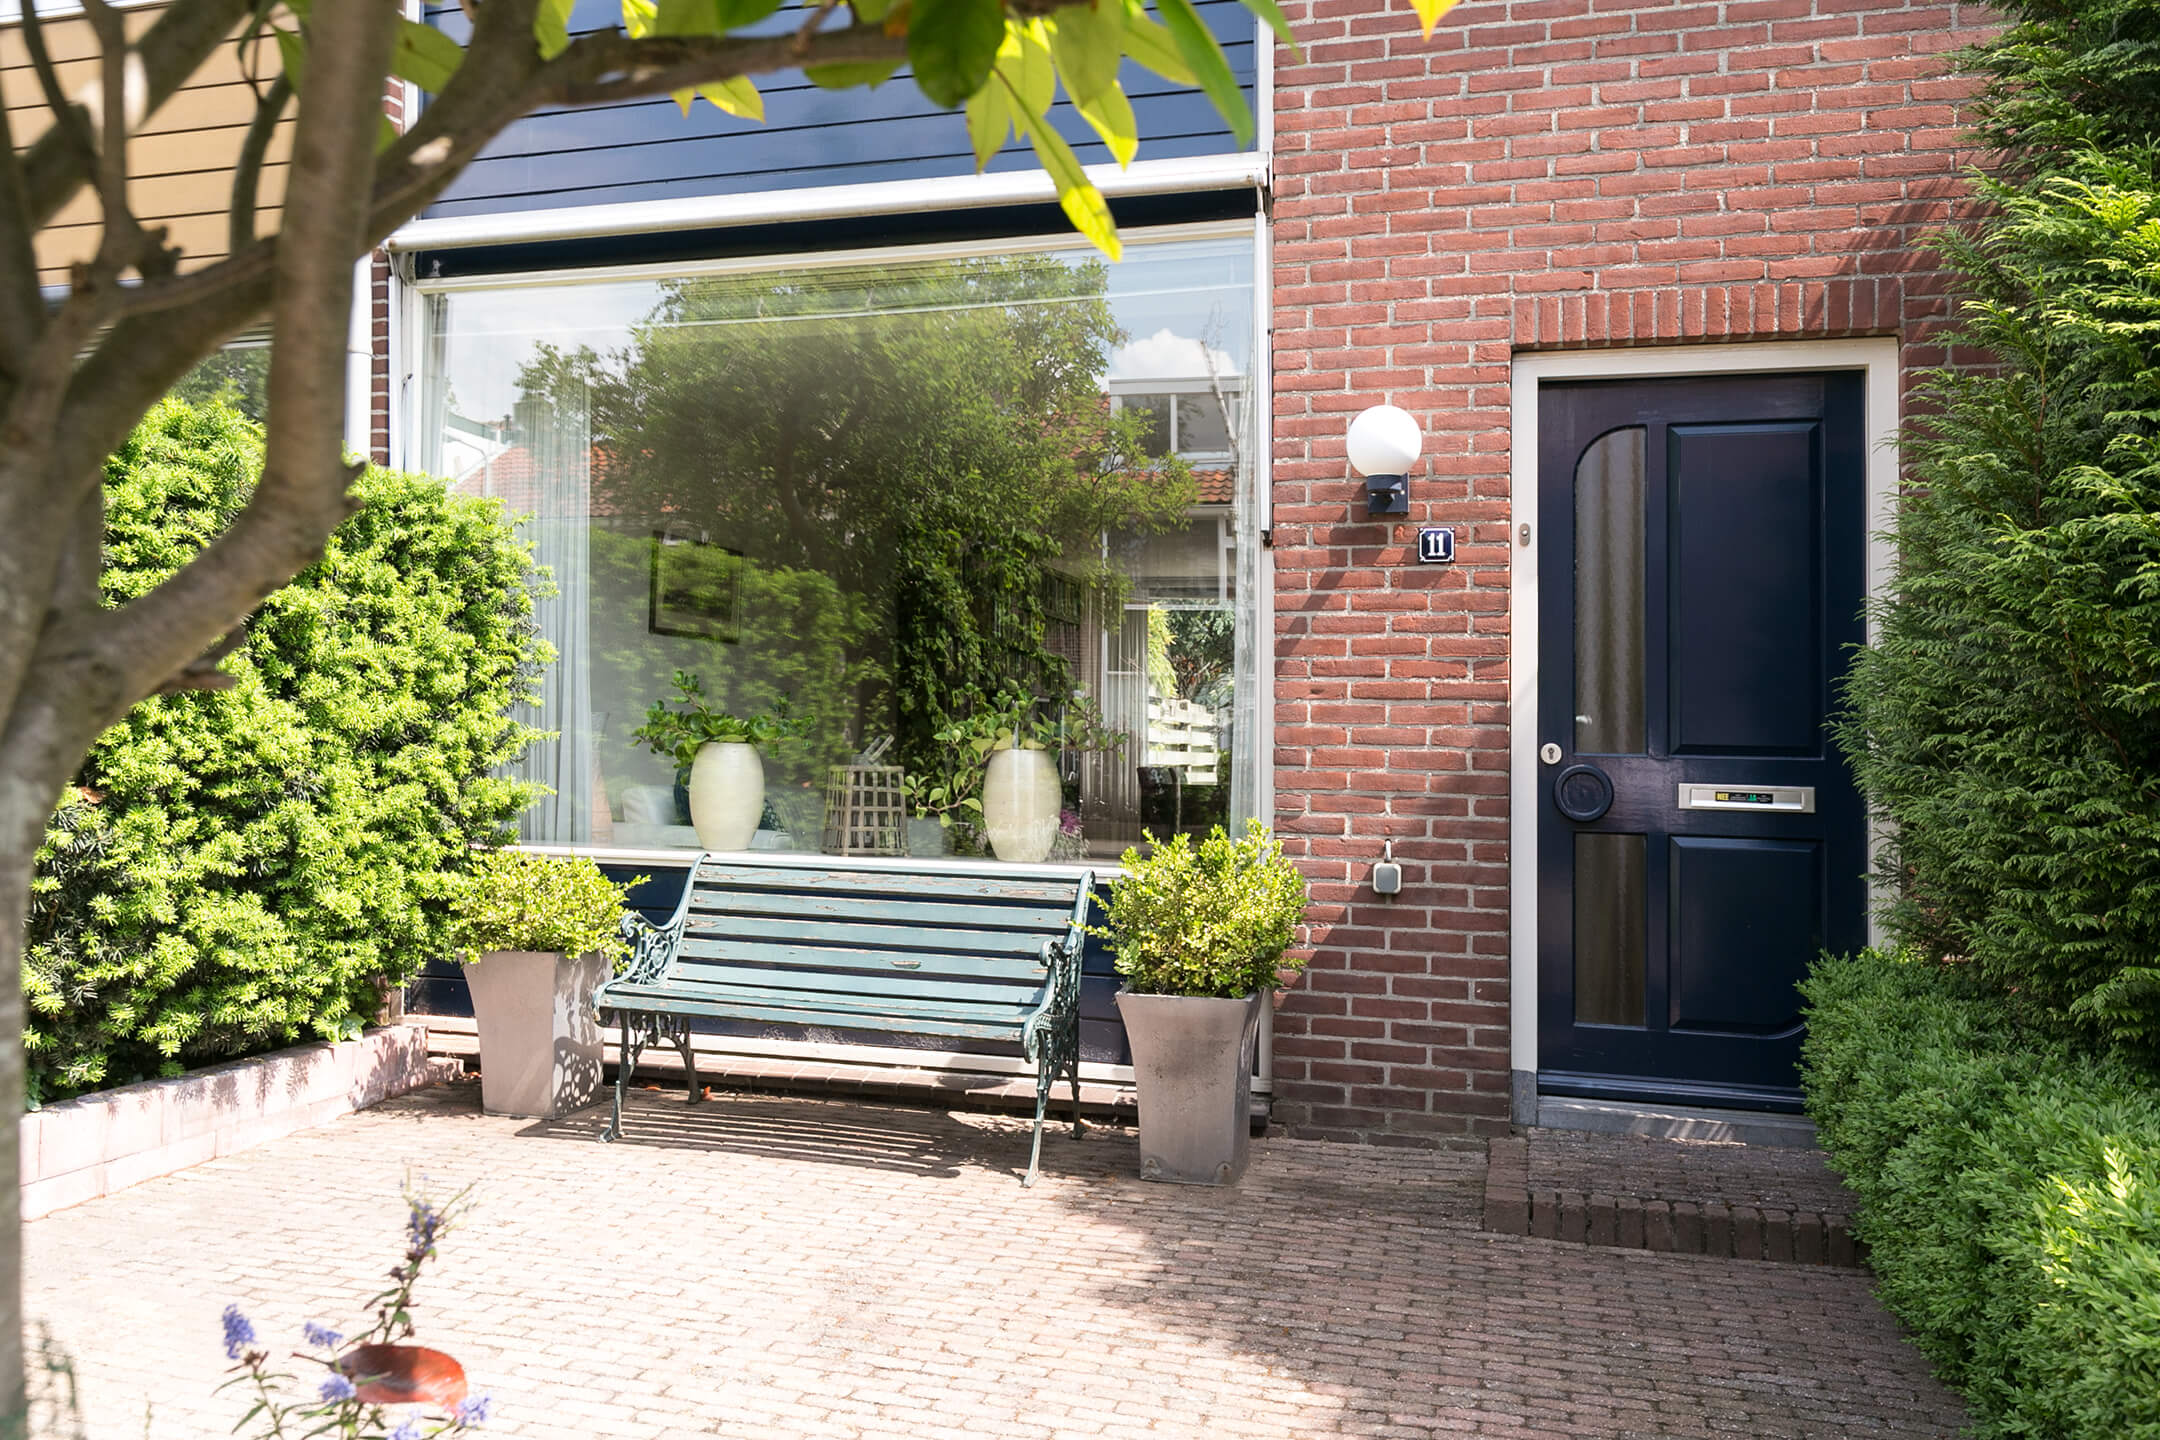 Parelstraat 11 2332 JK,Leiden,4 Bedrooms Bedrooms,1 BathroomBathrooms,Woonhuis,Parelstraat ,1017